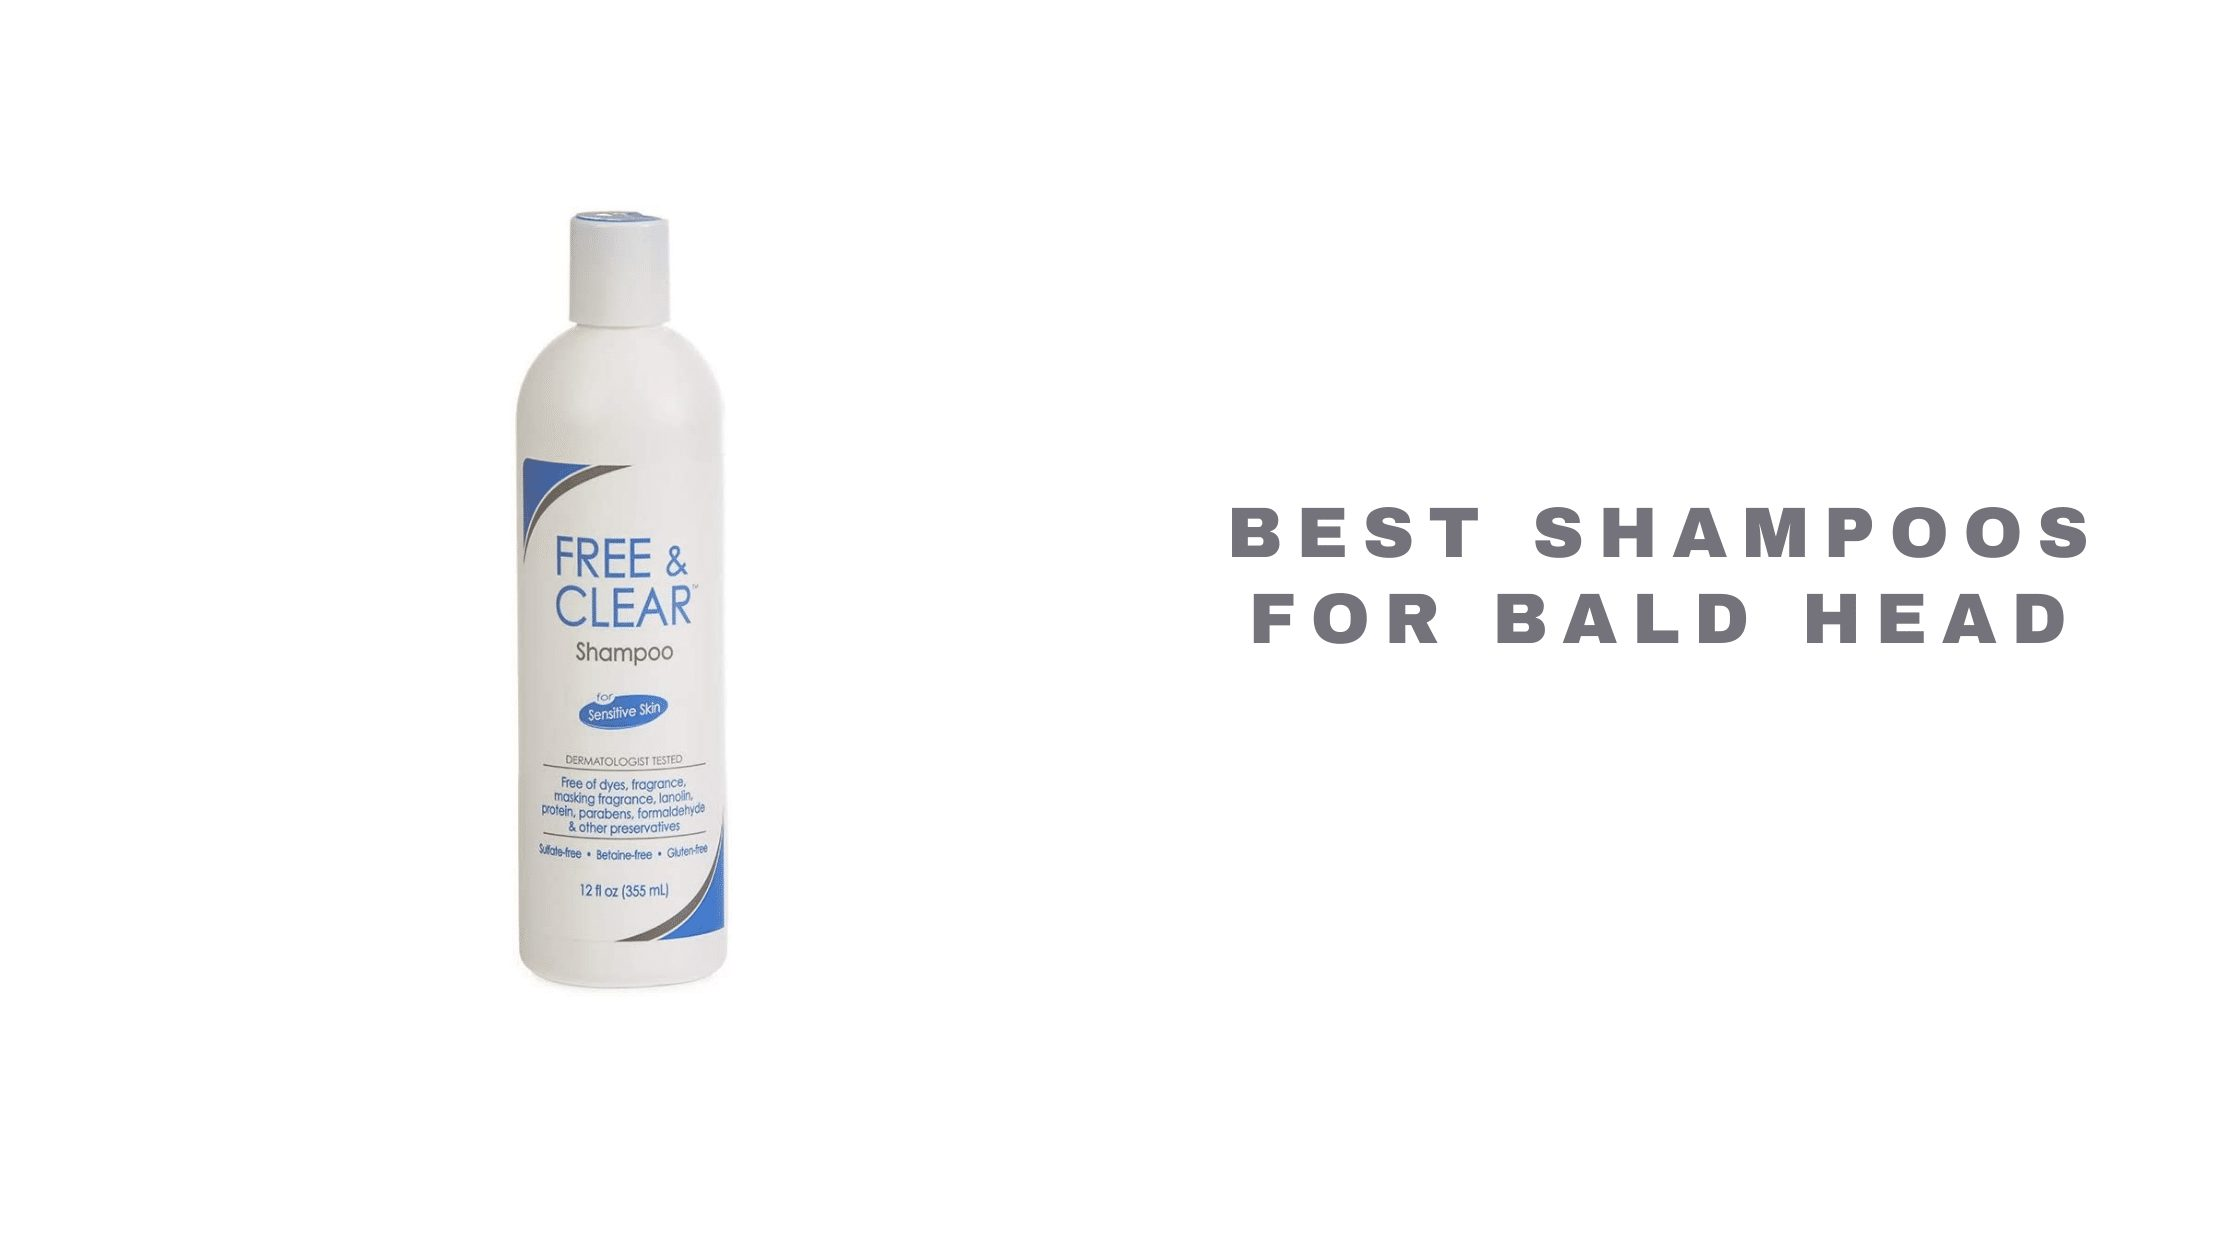 Best Shampoos for Bald Head 2021